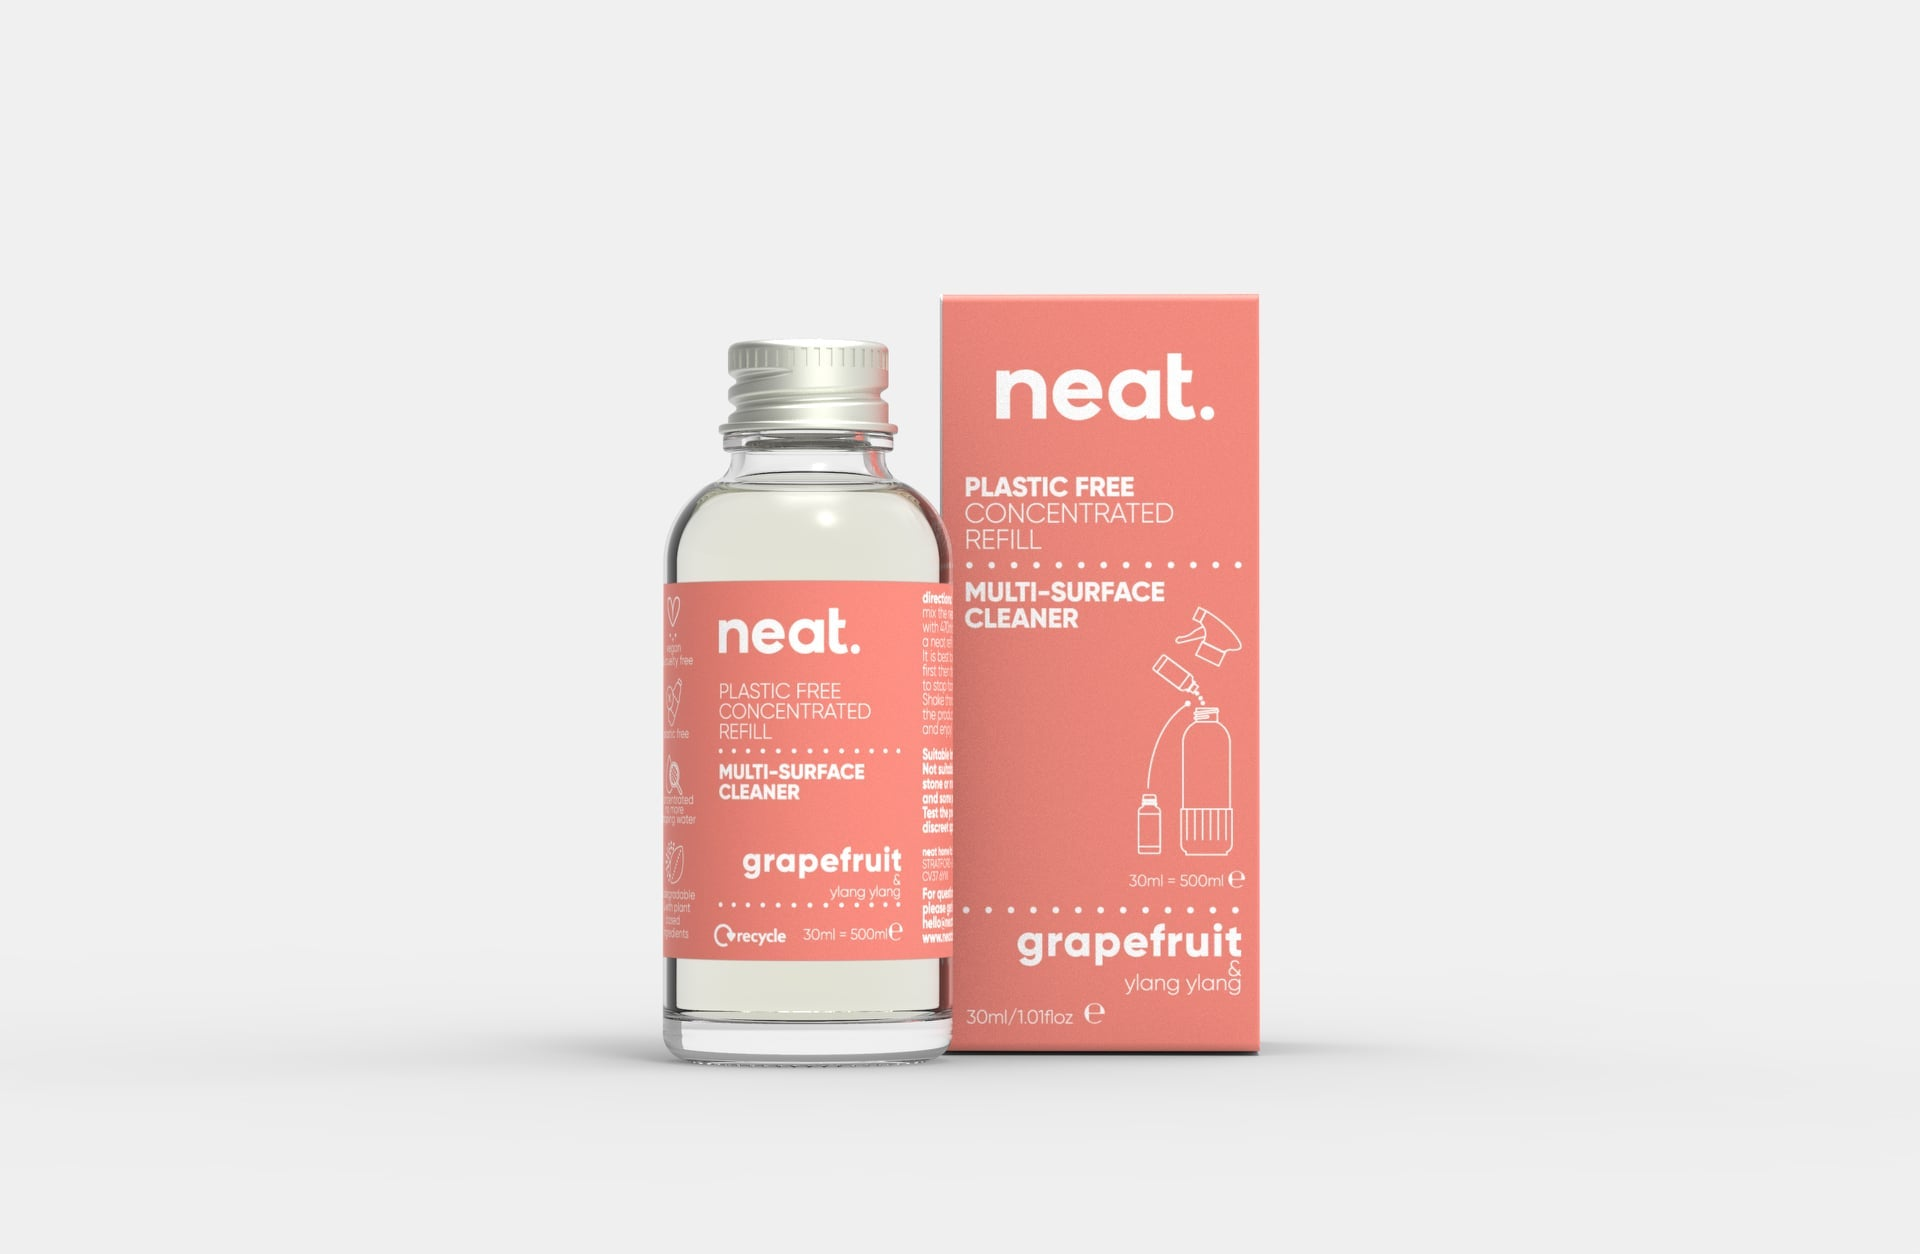 Neat Multi Purpose Cleaner Refill - Grapefruit and Ylang Ylang